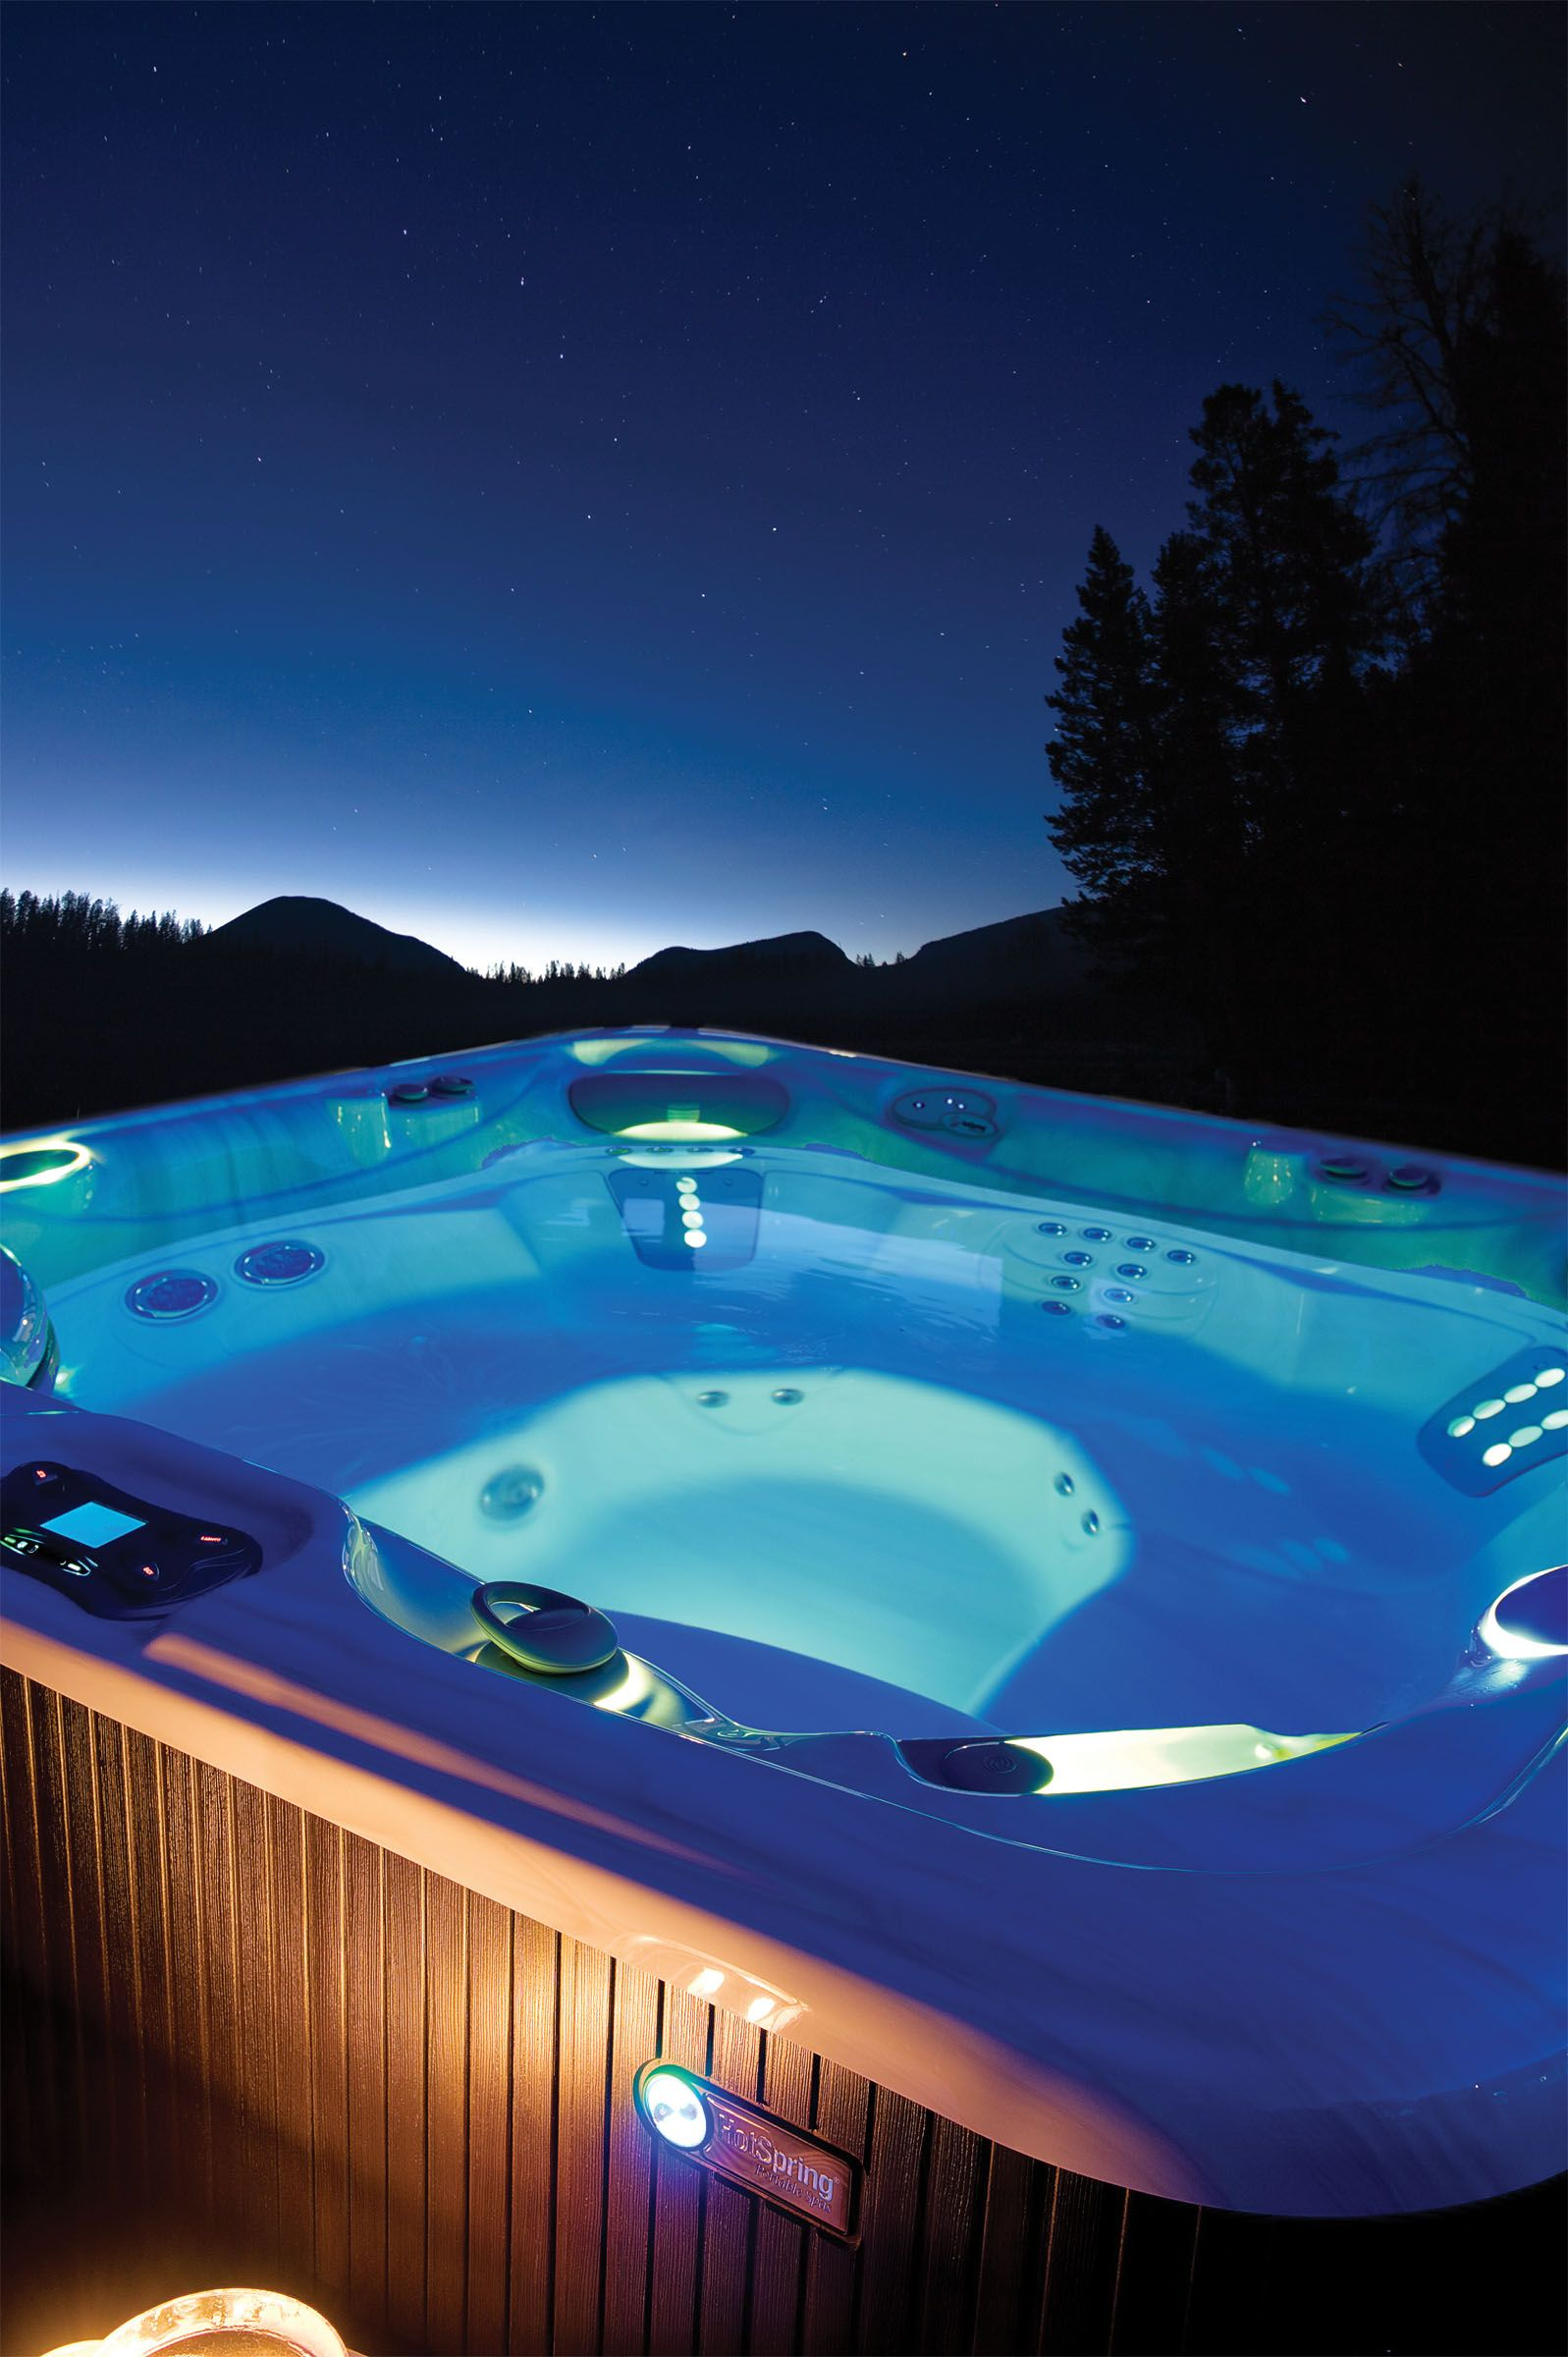 Enjoy stargazing from the comfort of your hot tub! Bright hot tub ...